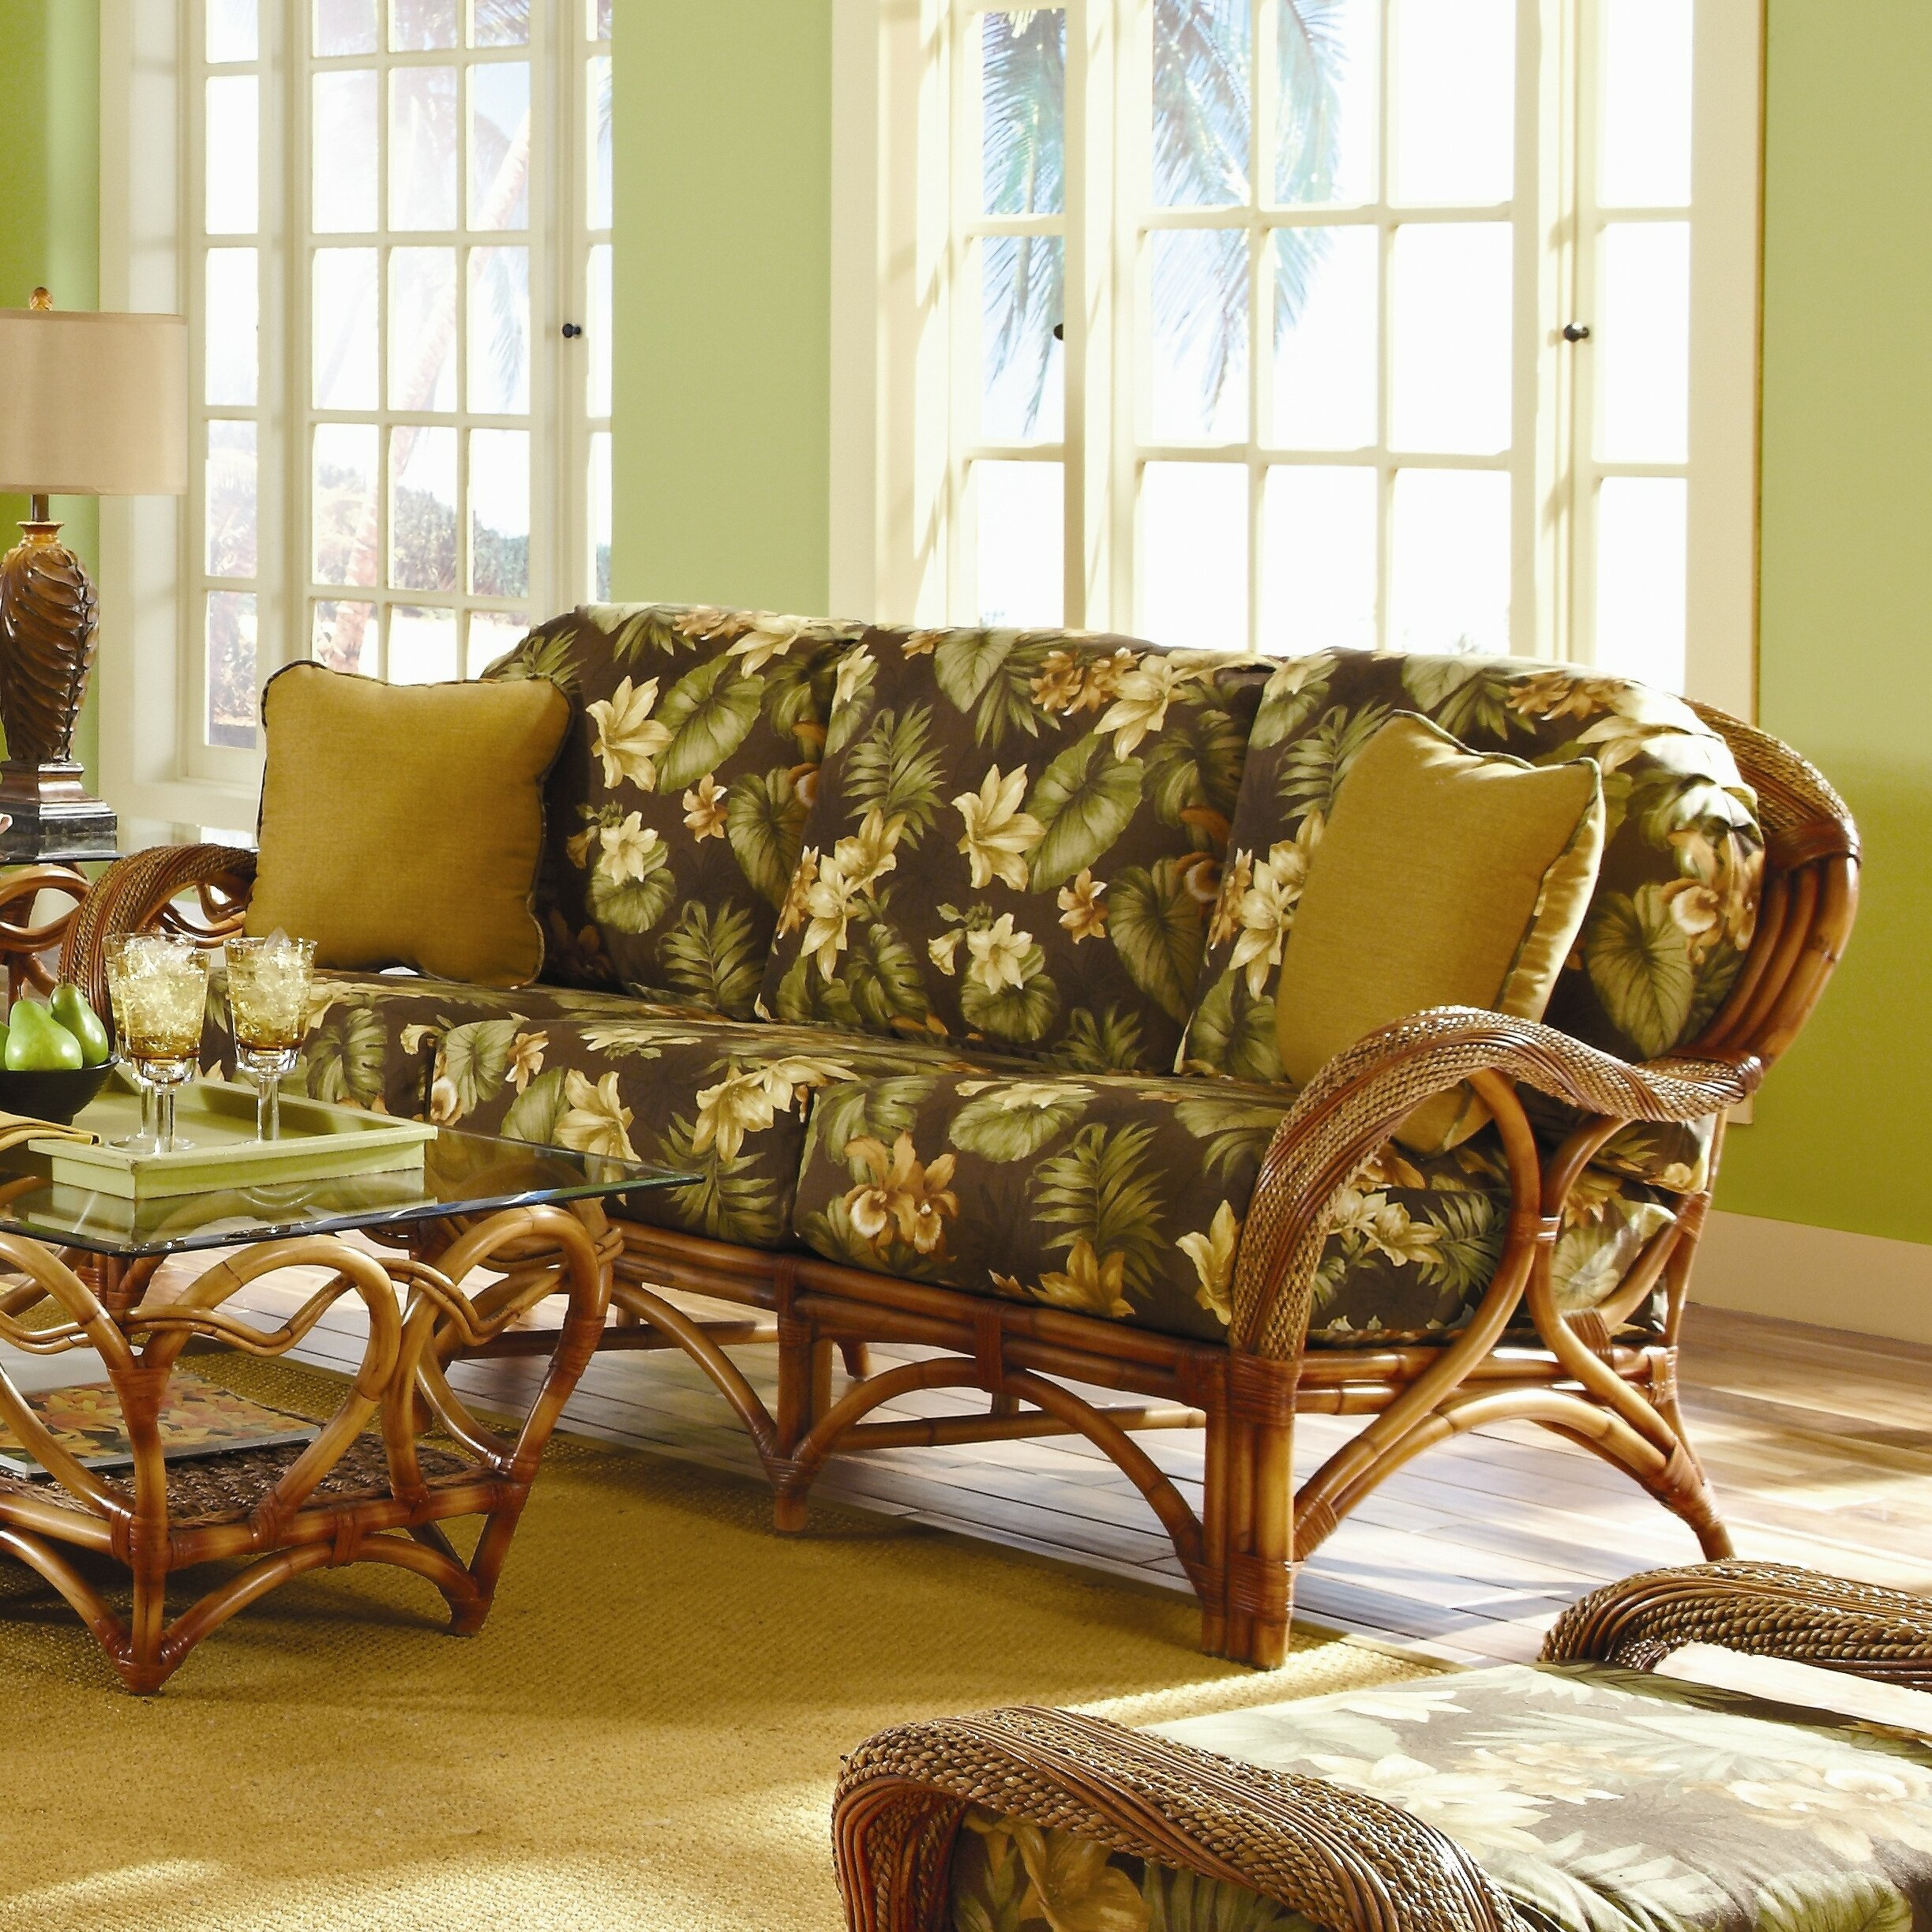 The Bay Living Room Furniture Spice Islands Caneel Bay Living Room Set Wayfair